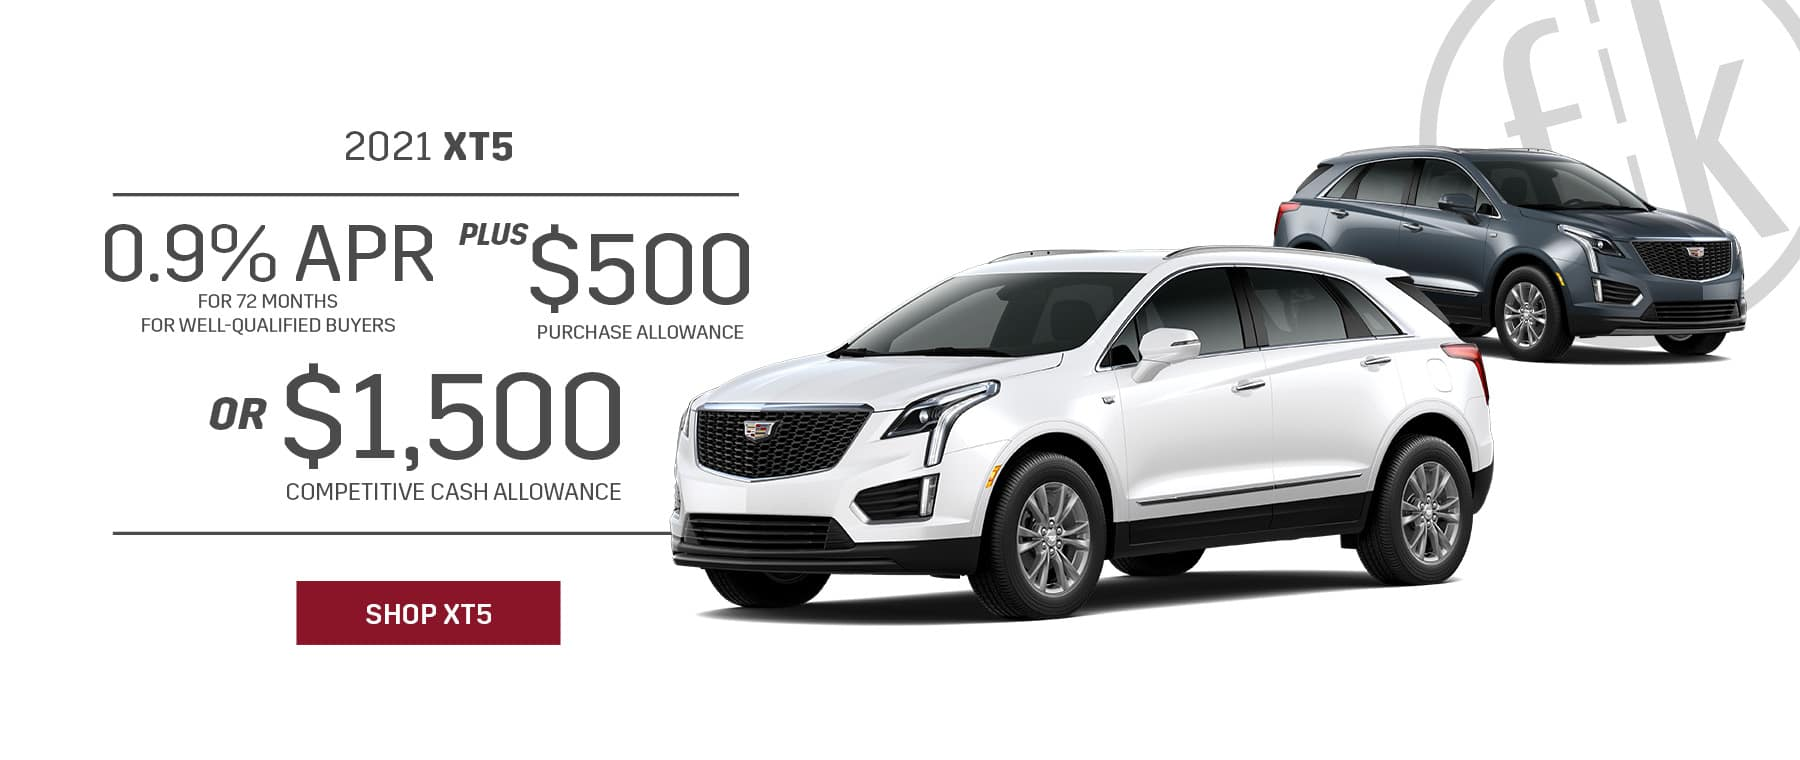 2021 XT5 0.9% for 72 mos PLUS $500 Purchase Allowance OR $1,500 Competitive Cash Allowance